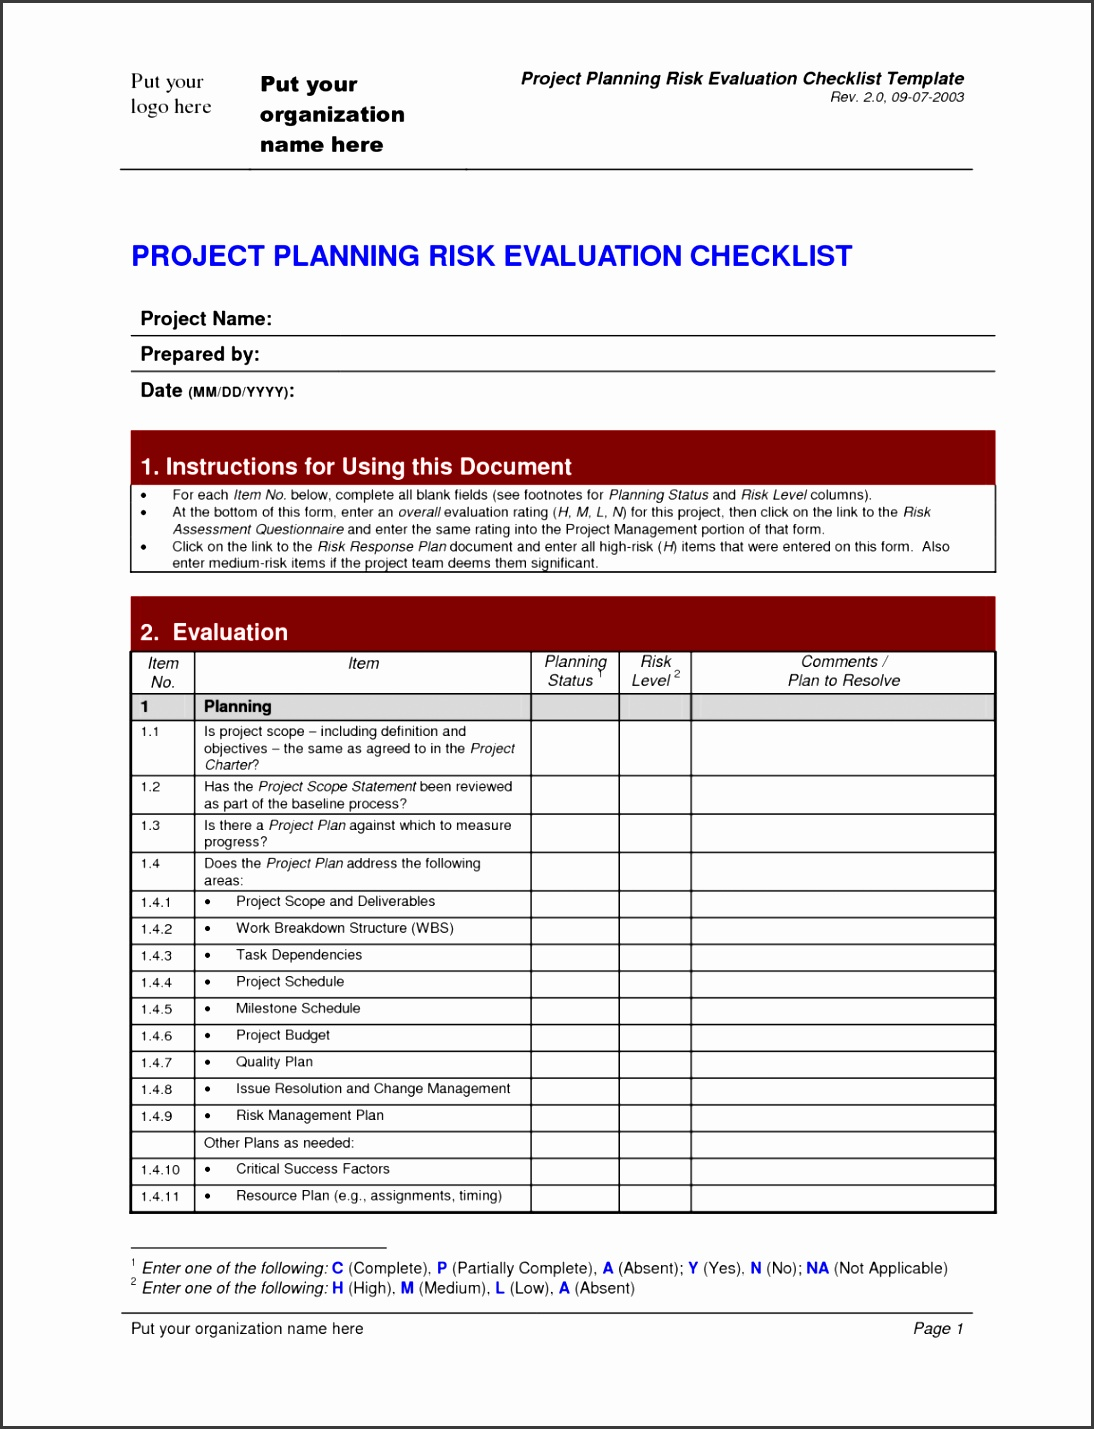 Project Checklist Template Authorizationletters Org Transition Sample Plan Document Initiation Software Closeout 1152